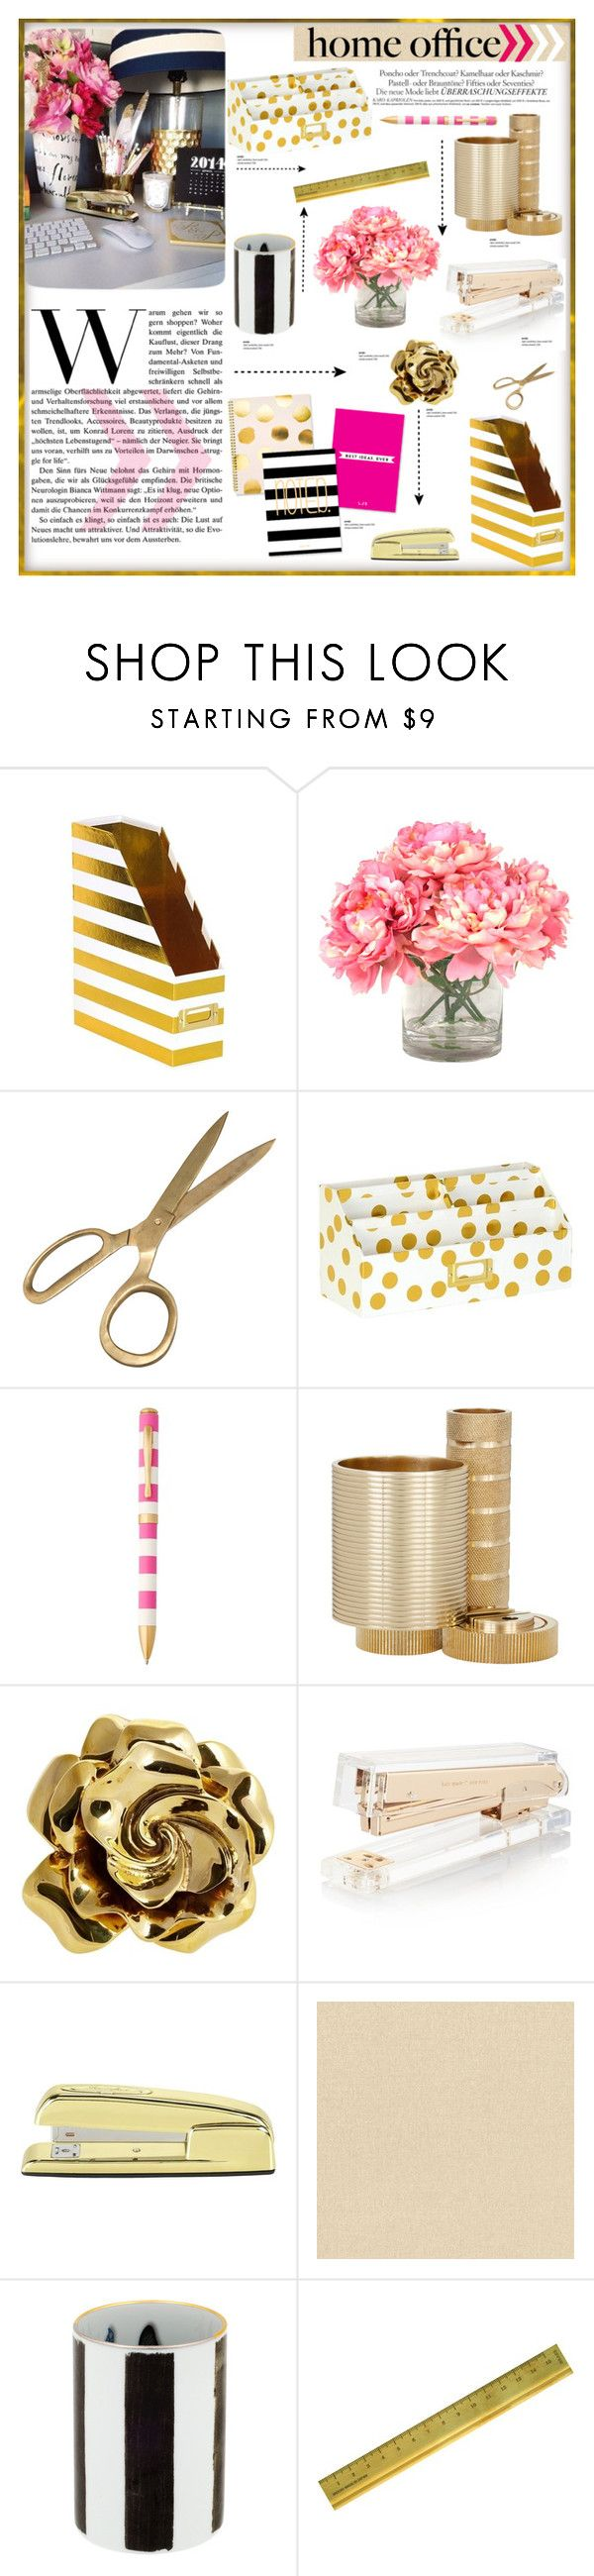 """Chic Home Office"" by carlavogel on Polyvore"